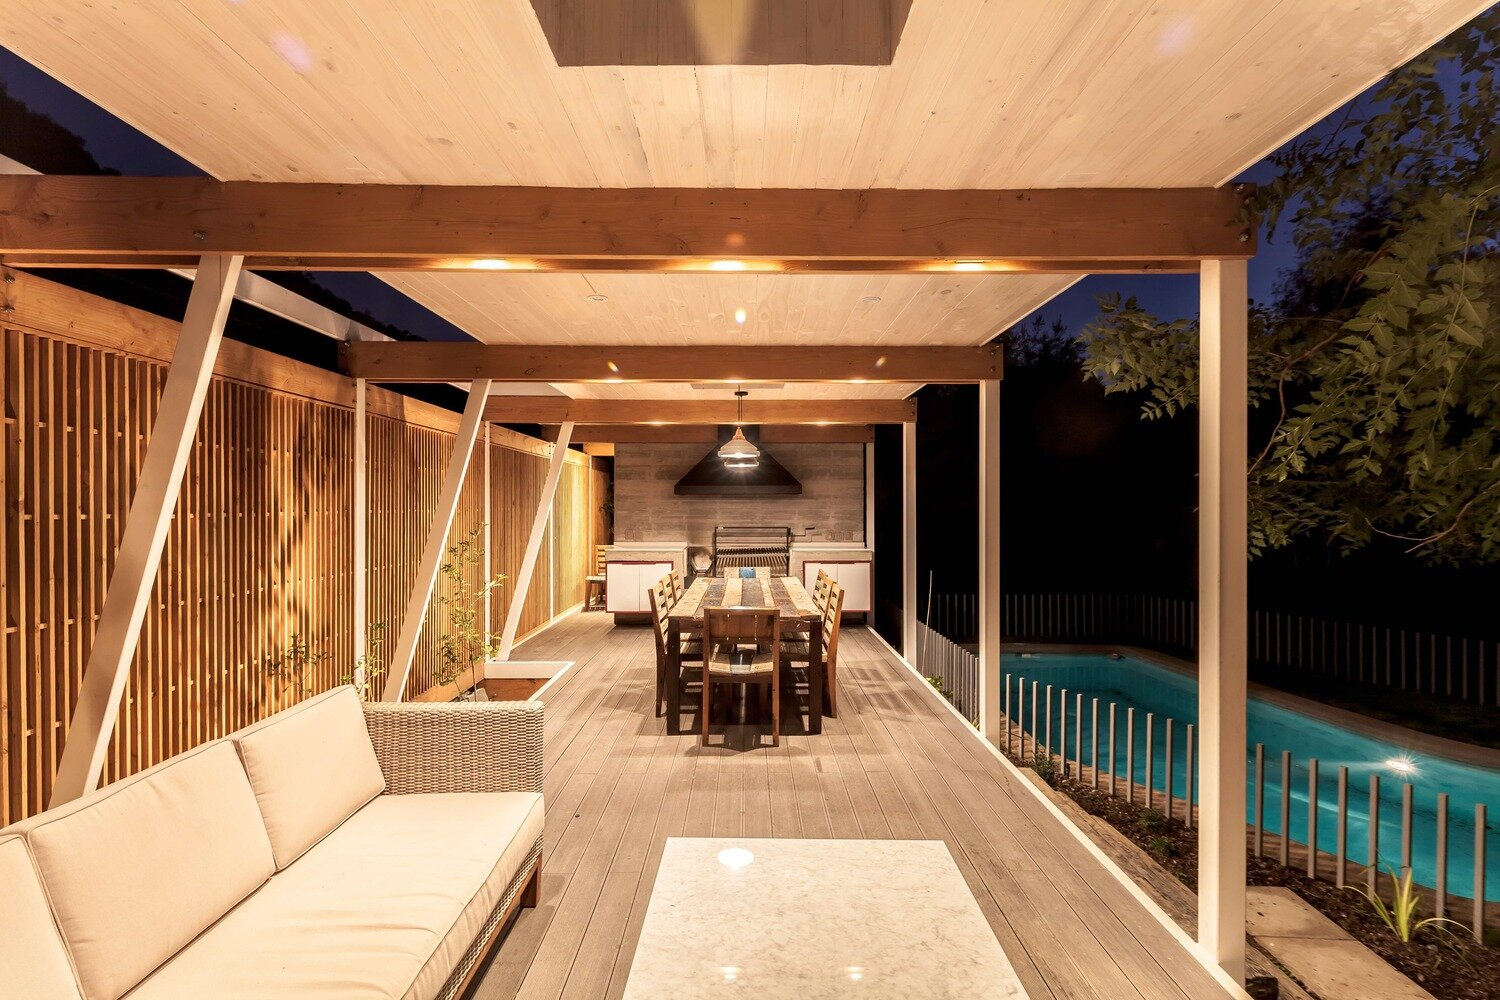 Pergola Pavilion - PAR Arquitectos - Chile - Living Area - Humble Homes